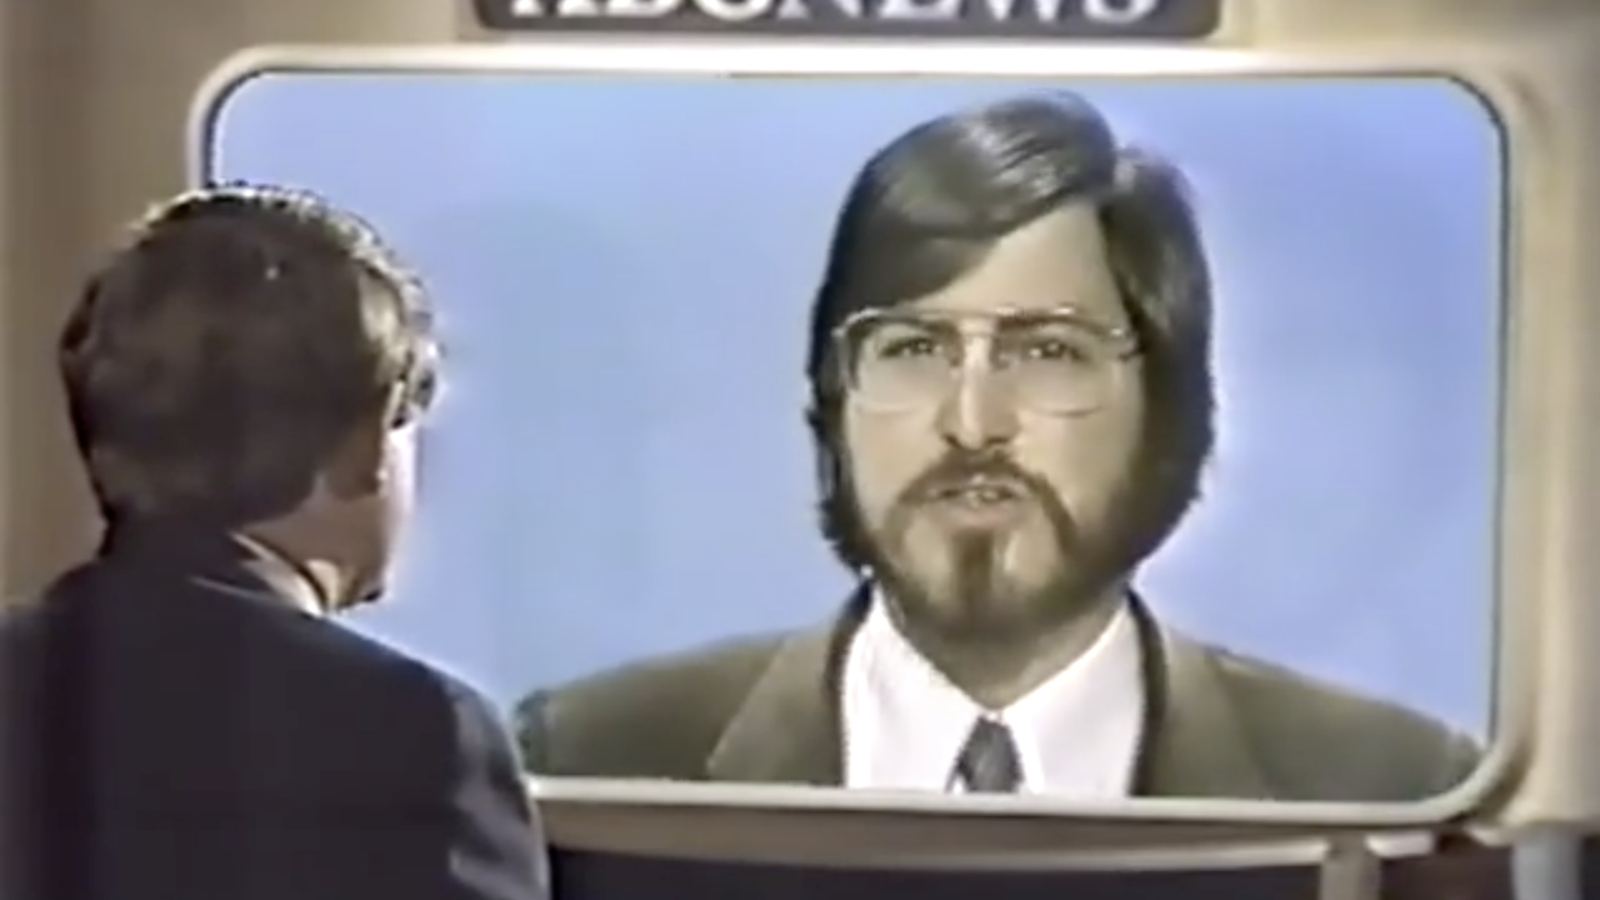 Watch Steve Jobs Assure Americans in 1981 That Computers Wouldn't Be a Privacy Nightmare